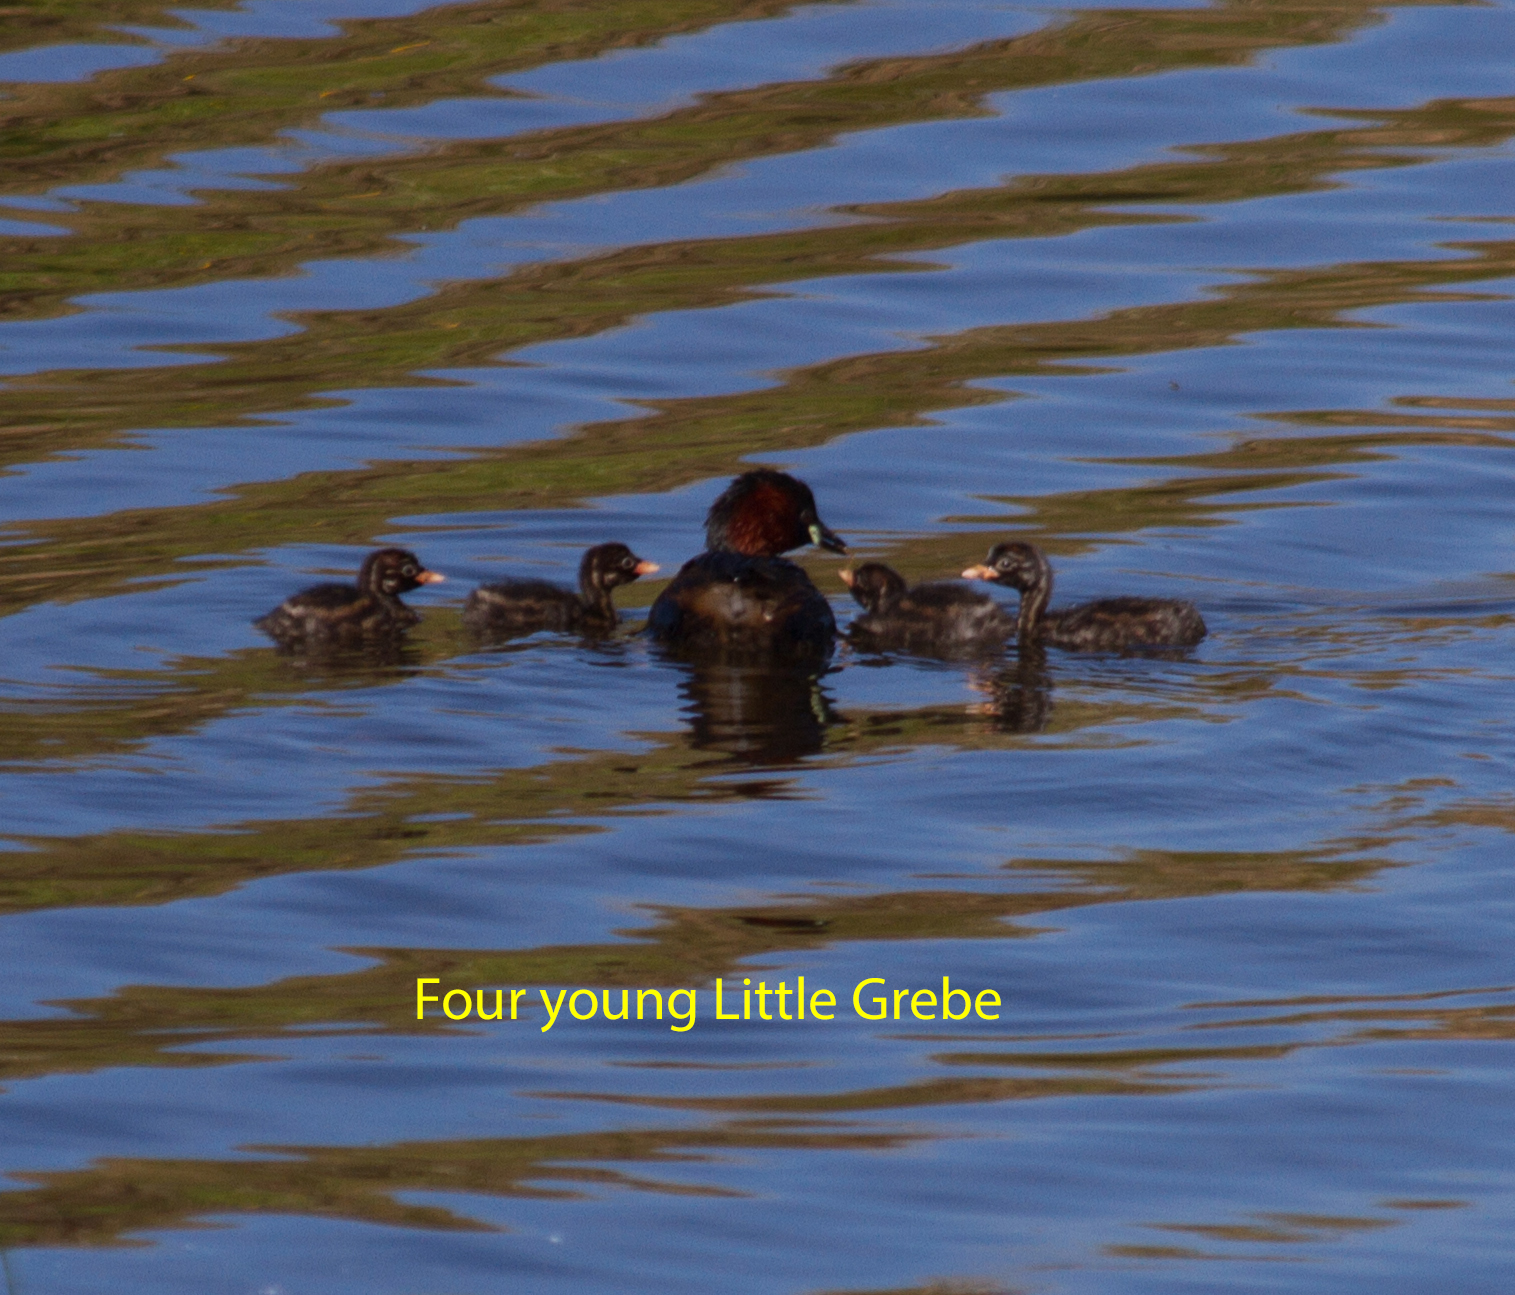 013-little-grebe-with-four-young-1-1-a3ec91ec2683bfa71e098c7ff606cc805dd57dfd